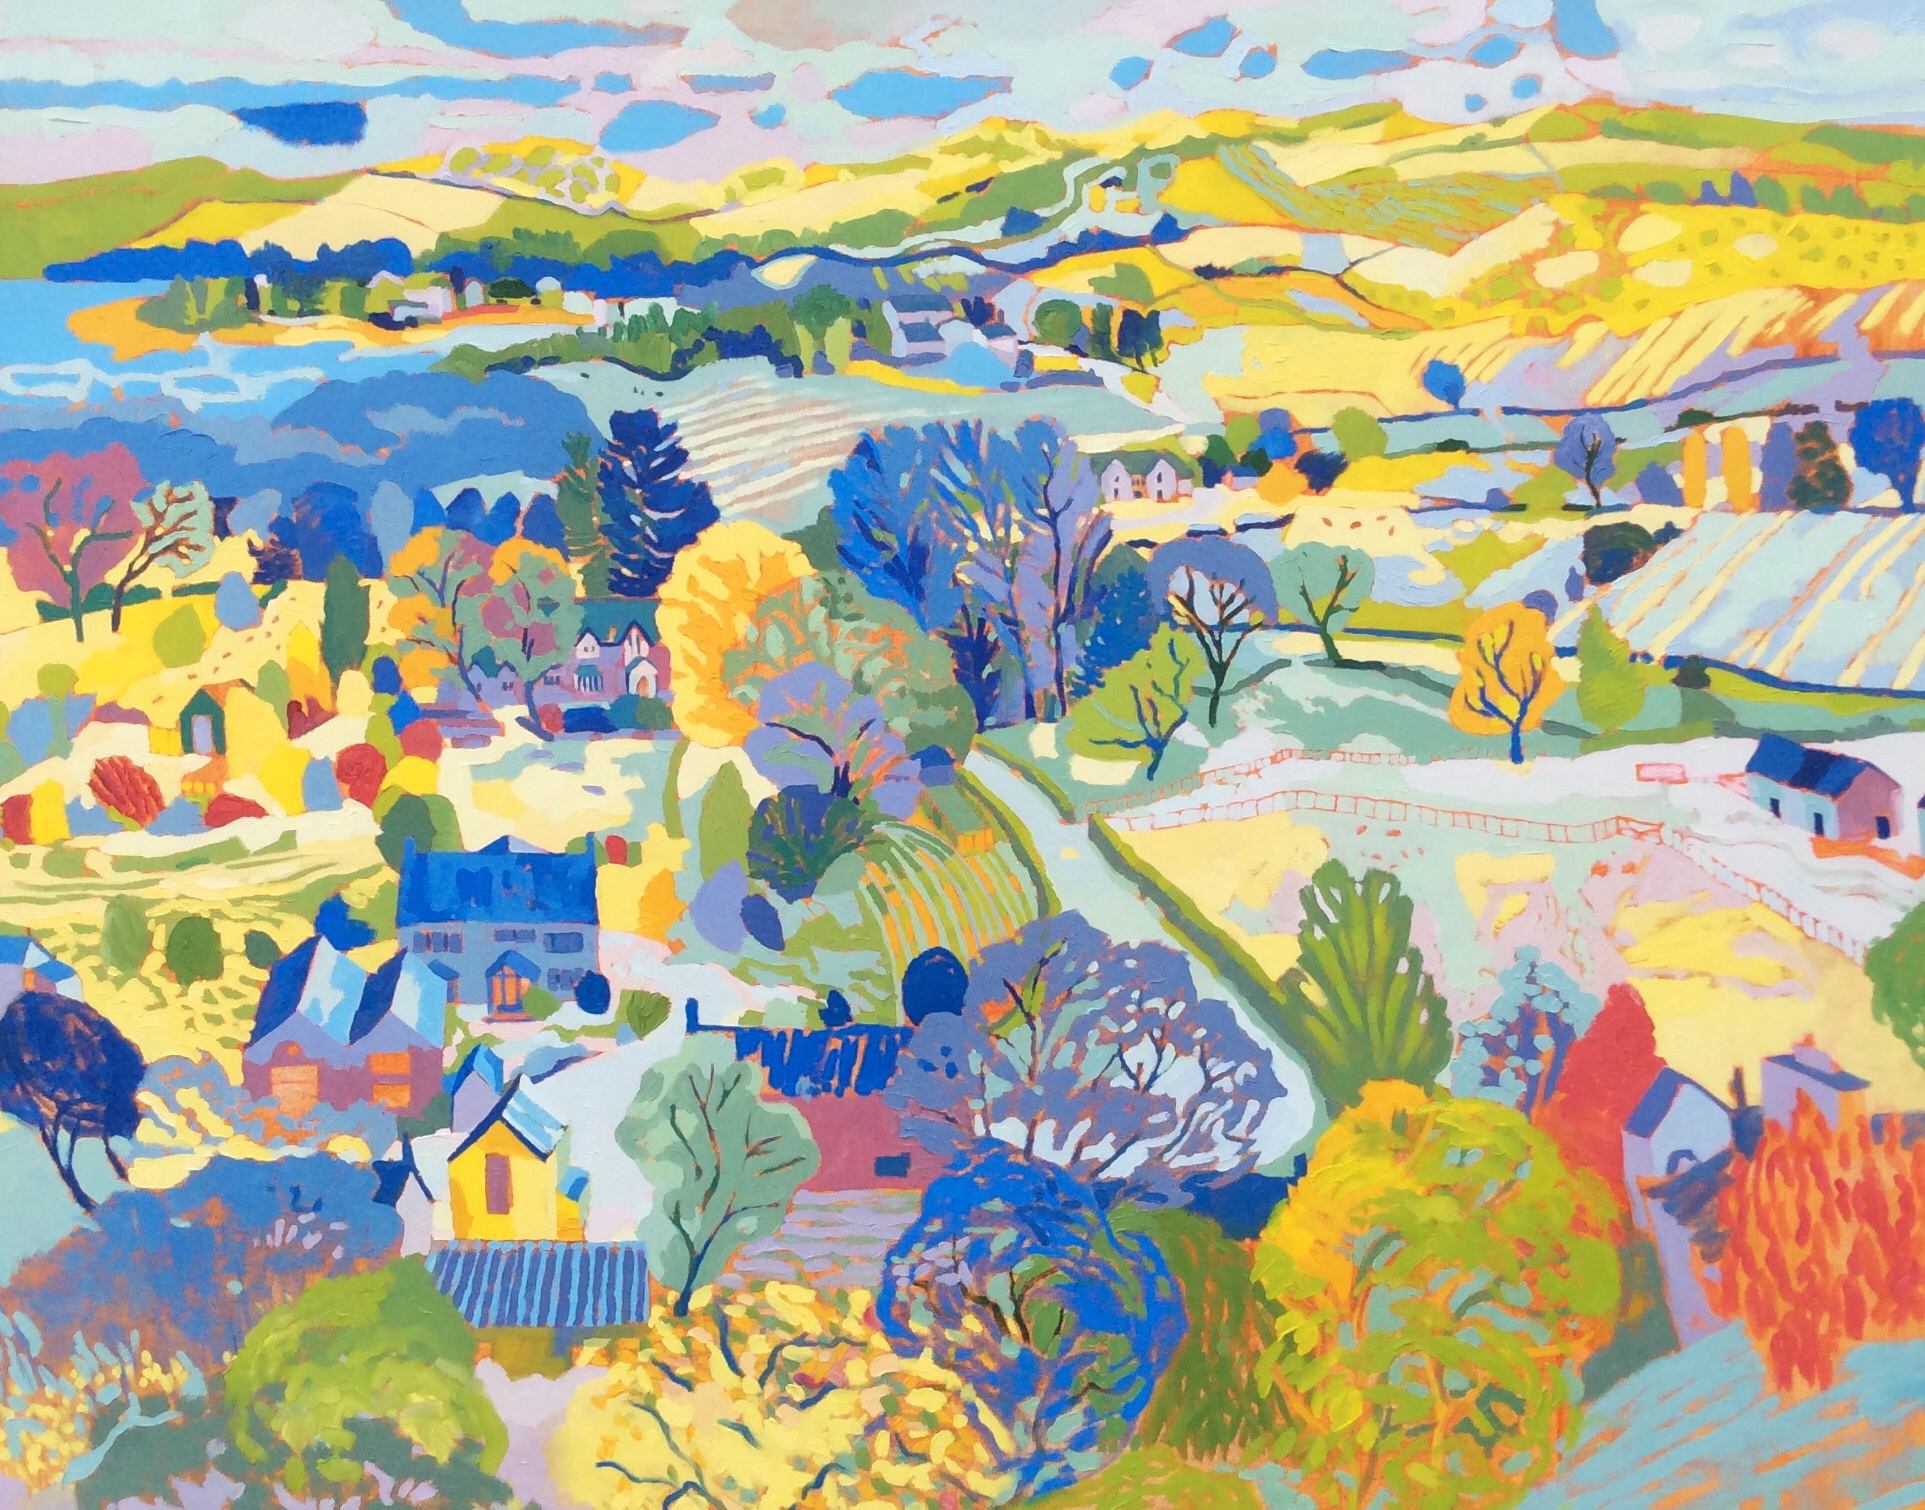 Carsington Village and Carsington Water. Oil on canvas. 120 x 150 cm. (Sold)